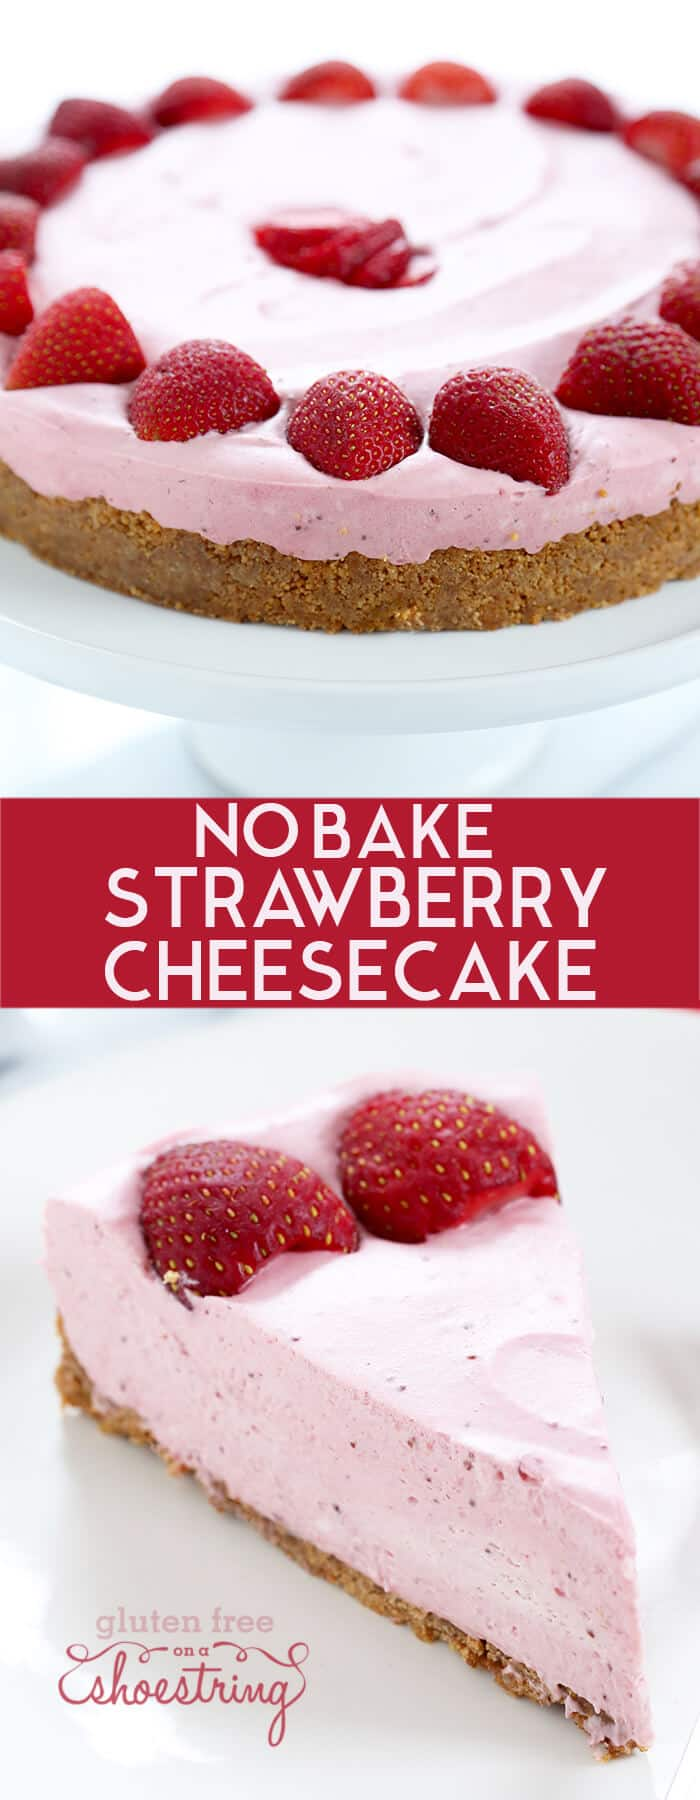 A whole strawberry cheesecake and a slice.